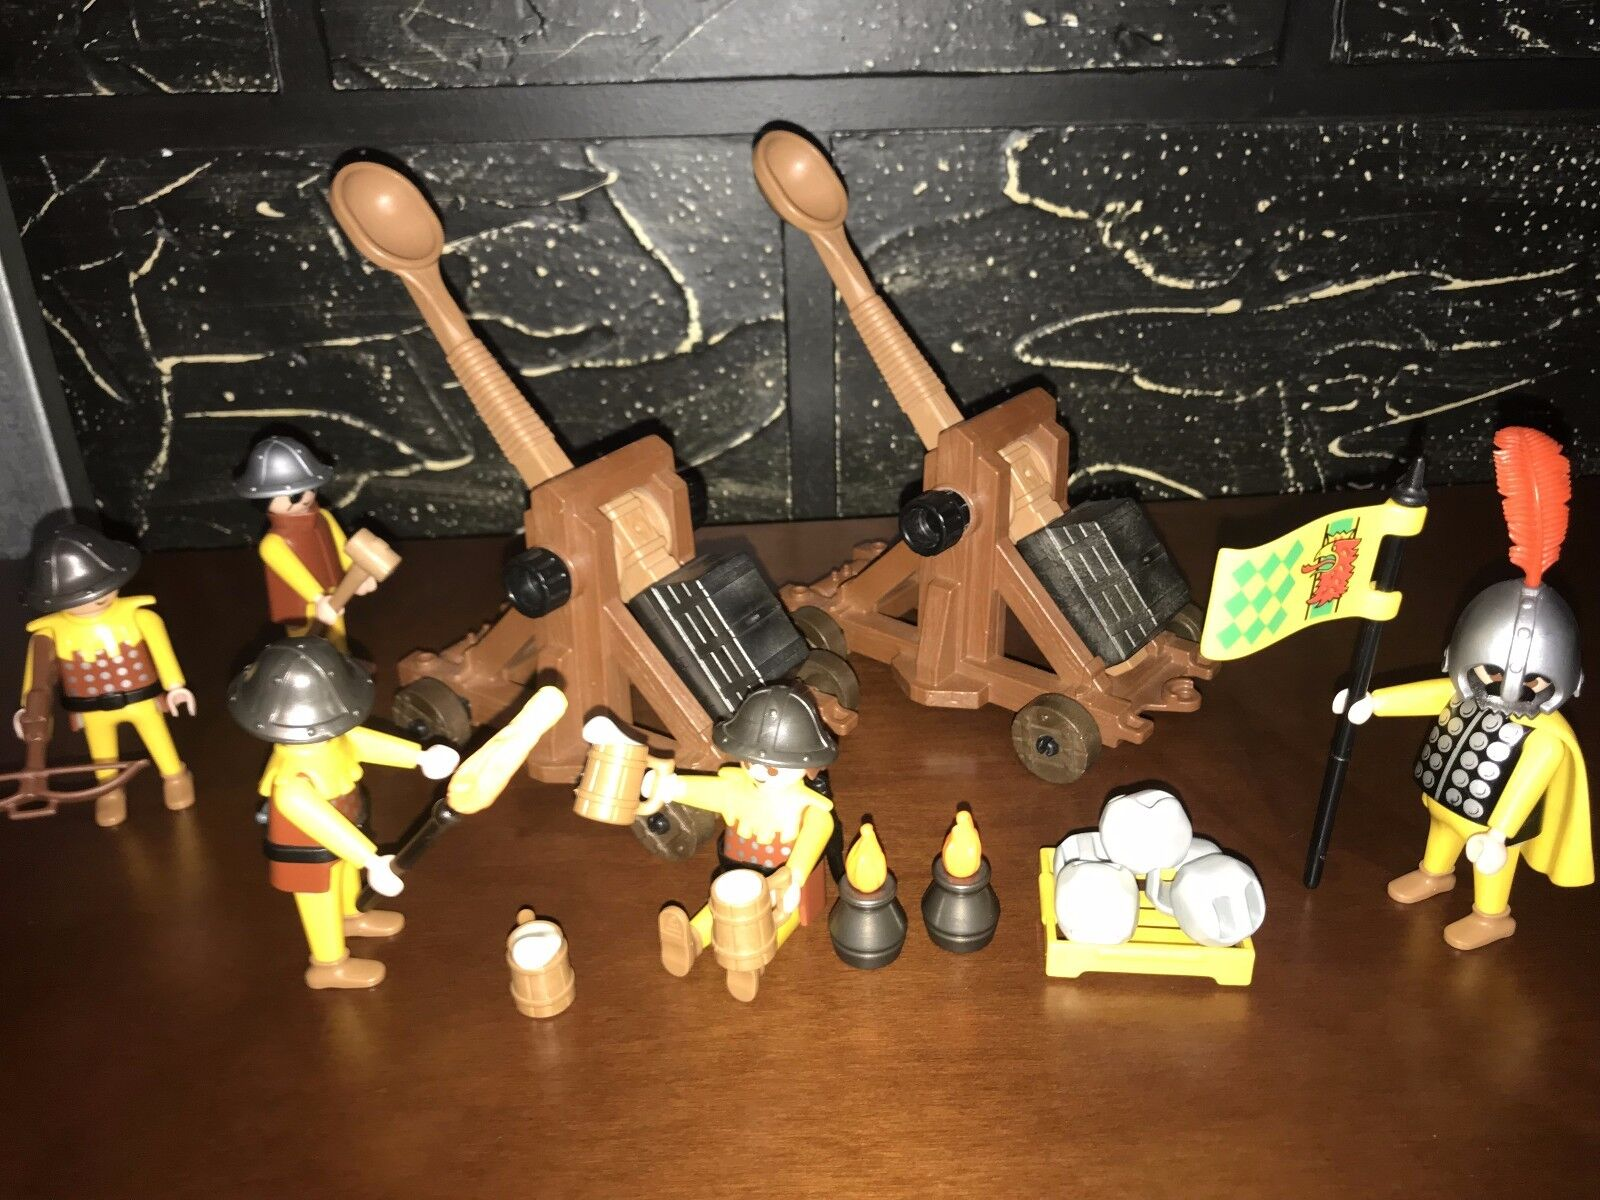 Playmobil 3653 Extended Set -Medieval Catapults Artillery -Extra Catapult & Figs